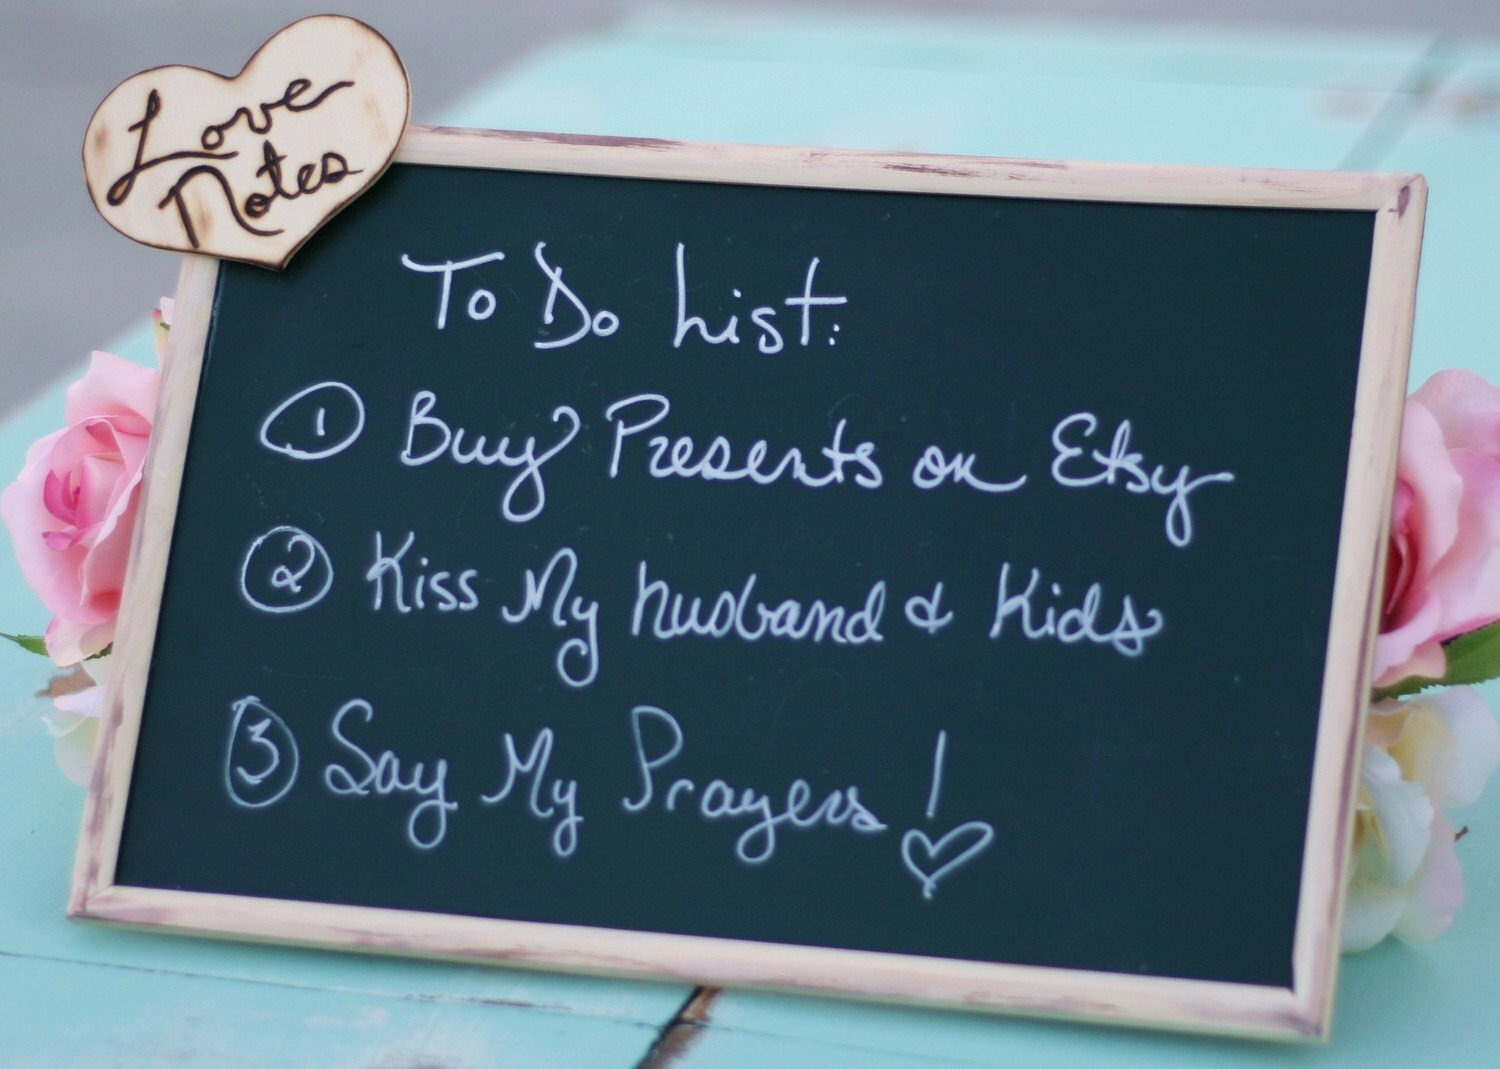 Personalized Farmhouse Cottage Love Notes Chalkboard Memo Board Rustic Woodland Engraved Wood Eco Friendly Bridal Shower Gift Affordable and CHIC Wedding Sign Photo Booth Prop